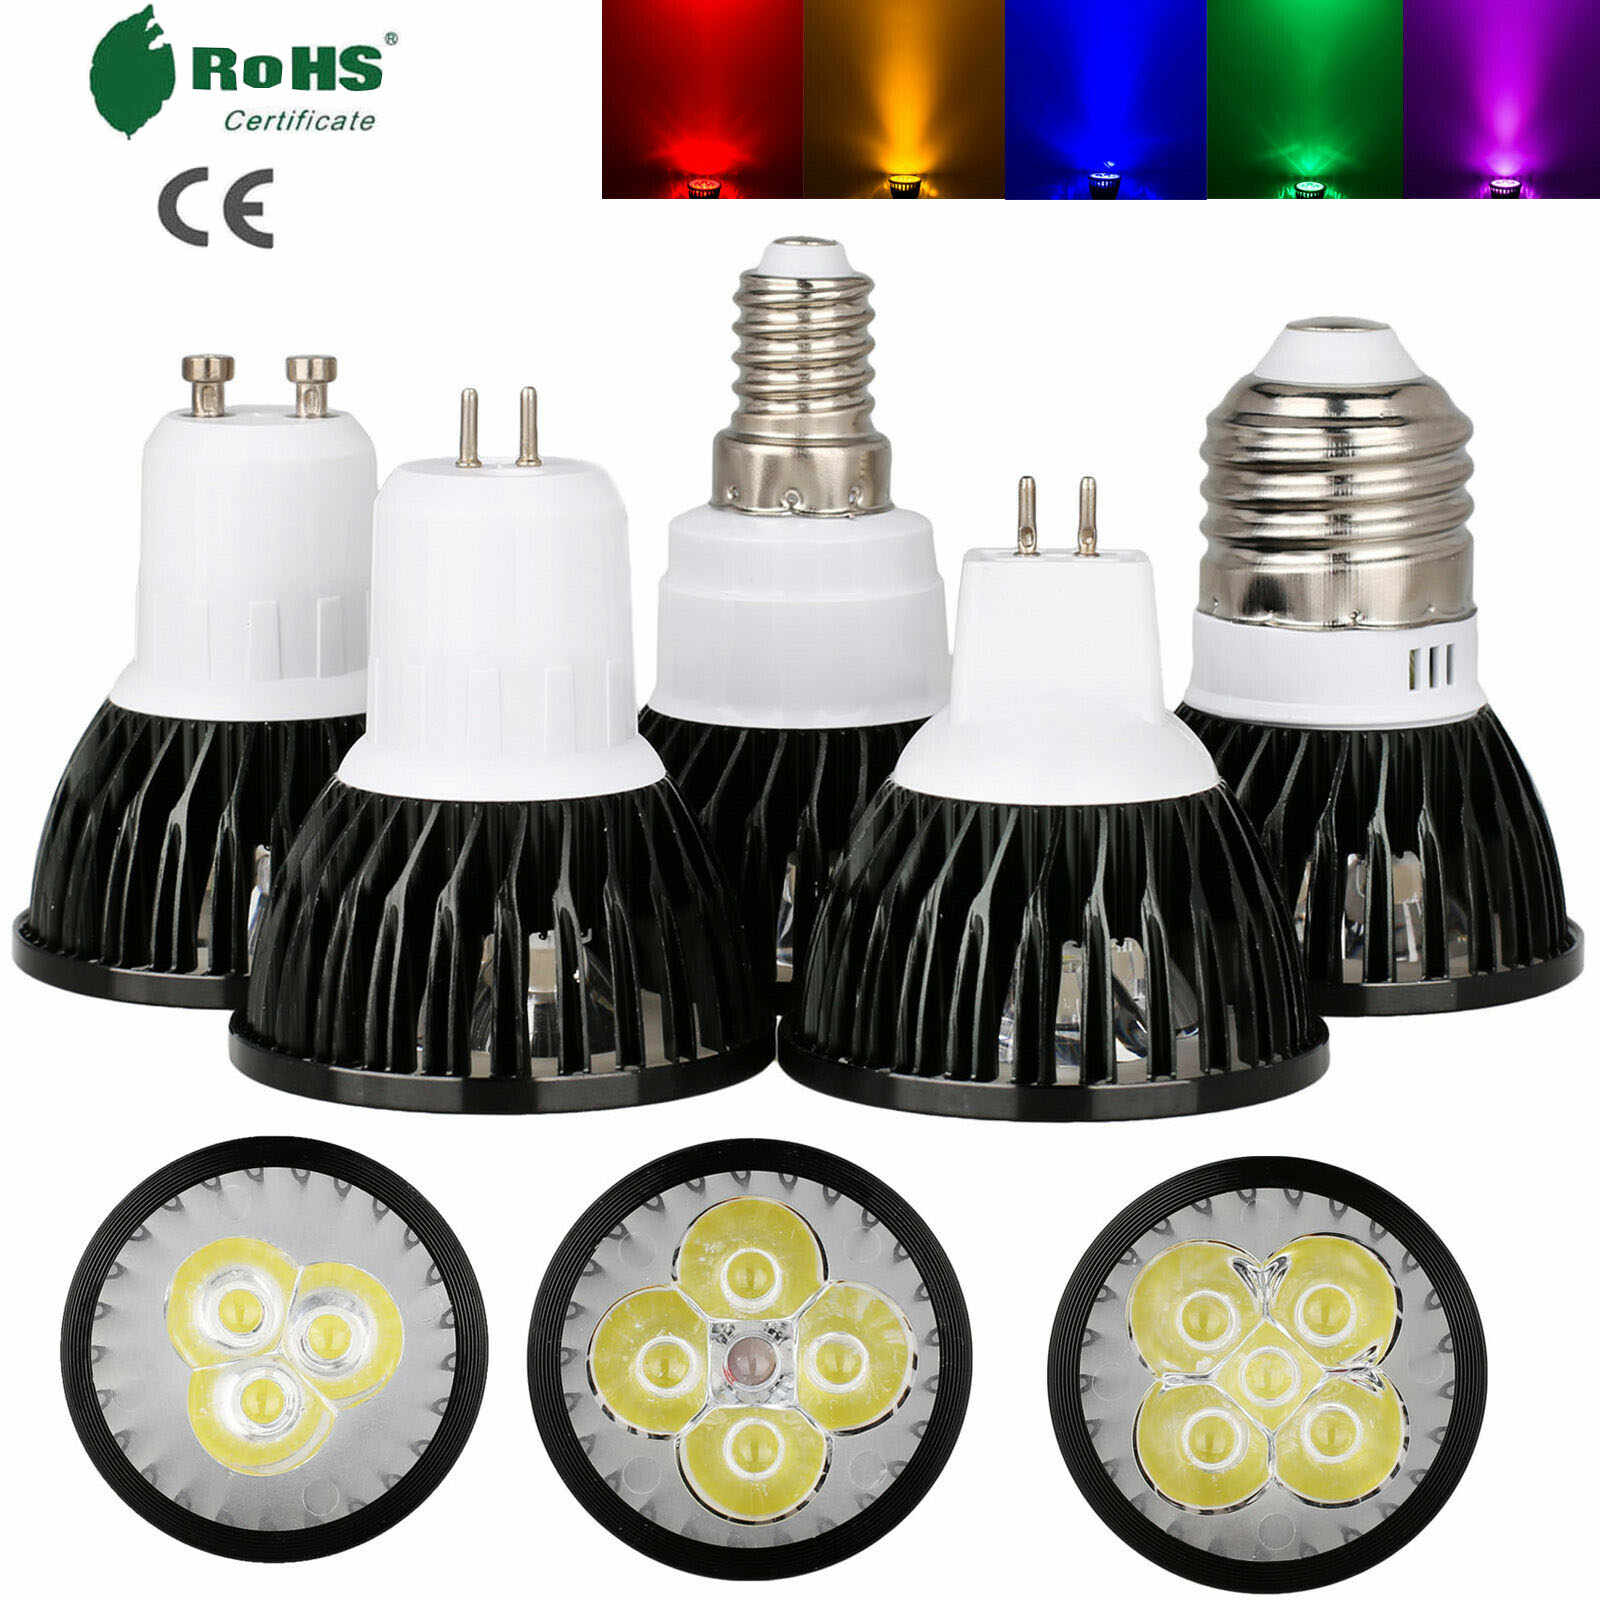 LED Lampada 9W 12W 15W GU10 MR16 GU5.3 E27 E26 E12 LED Bulb 85-265V 12V  Led Spotlight Red Yellow Blue Green Purple LED Lamp